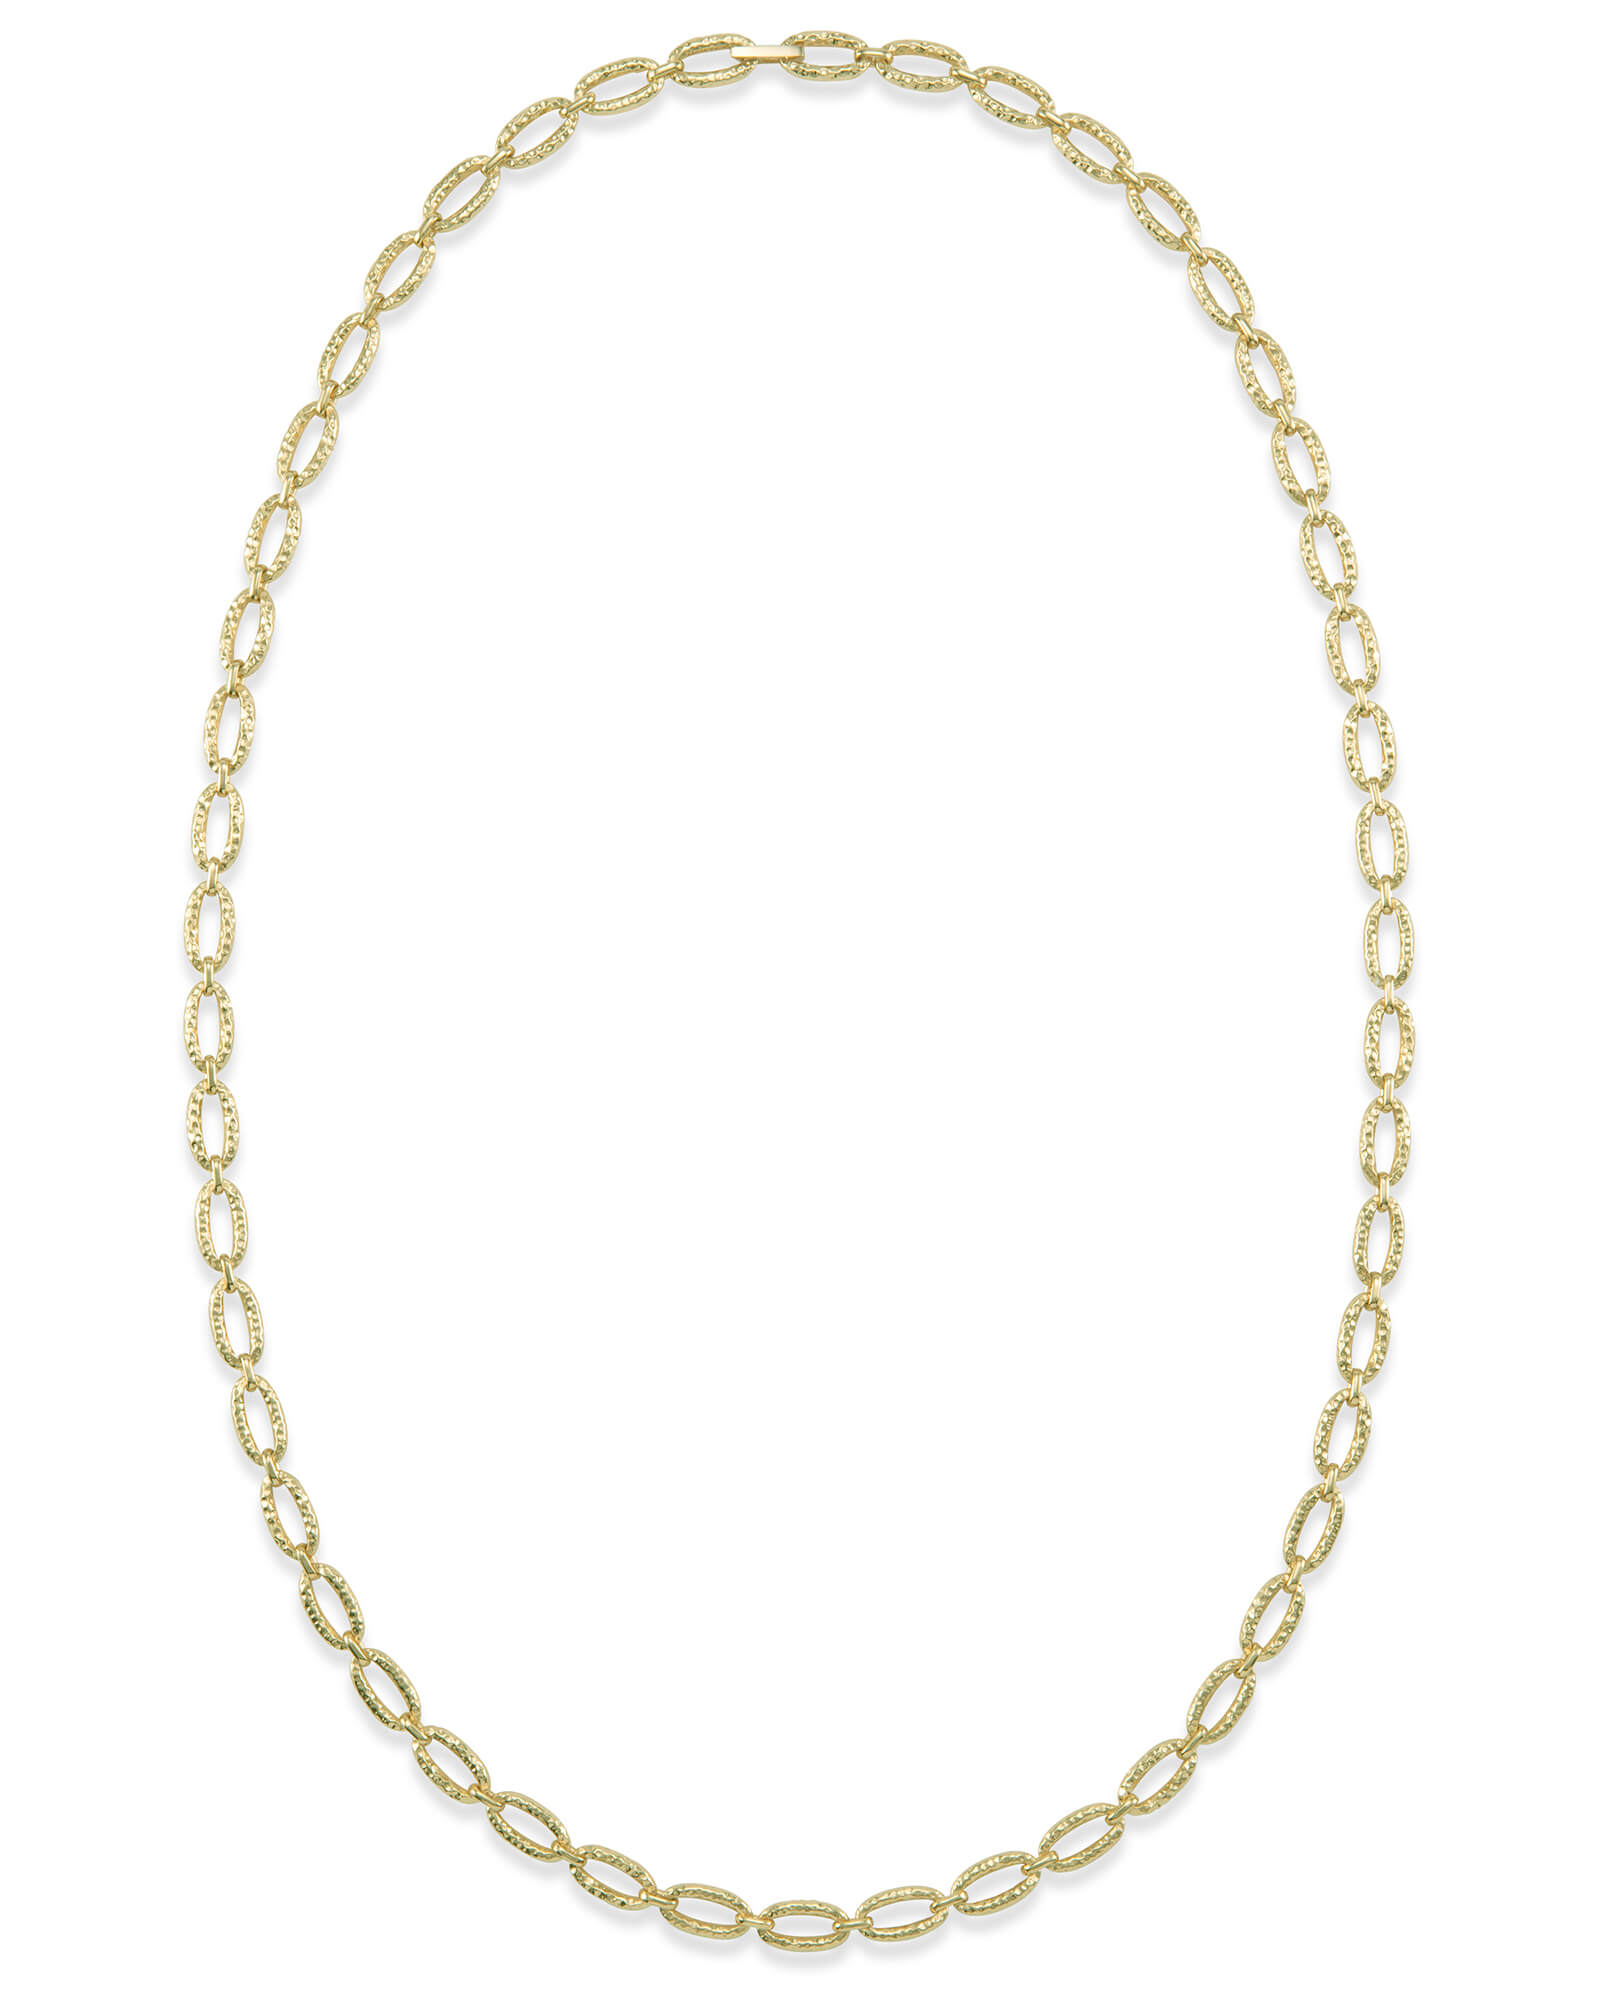 "32"" Chain Link Necklace in Gold"